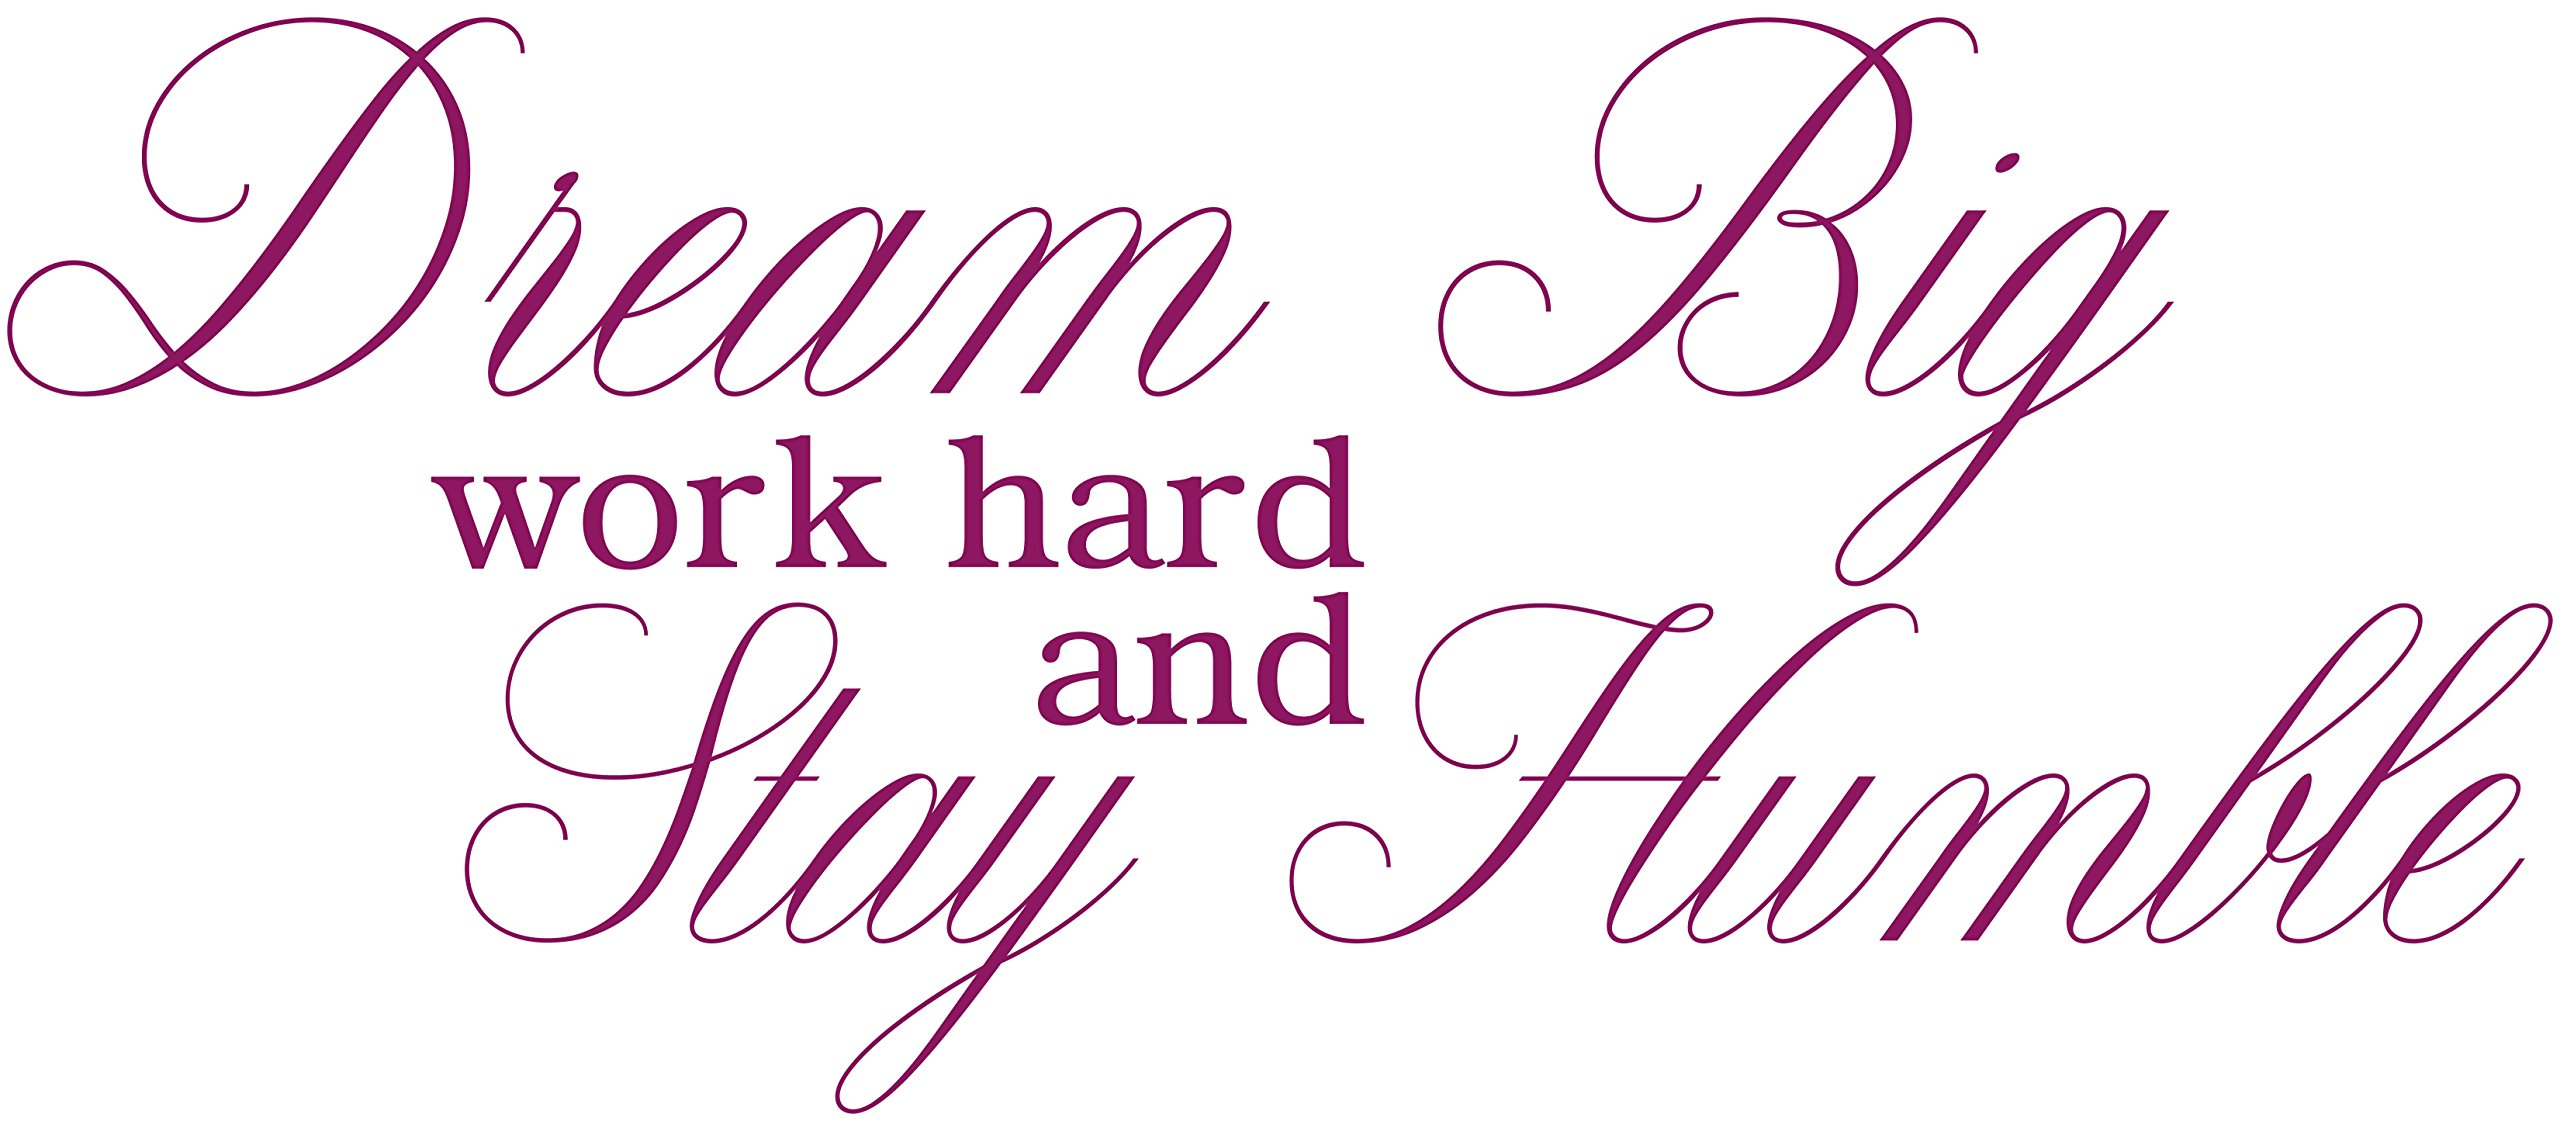 Omega Dream Big work hard and Stay Humble Vinyl Decal Wall Sticker Quote - Medium - Purple